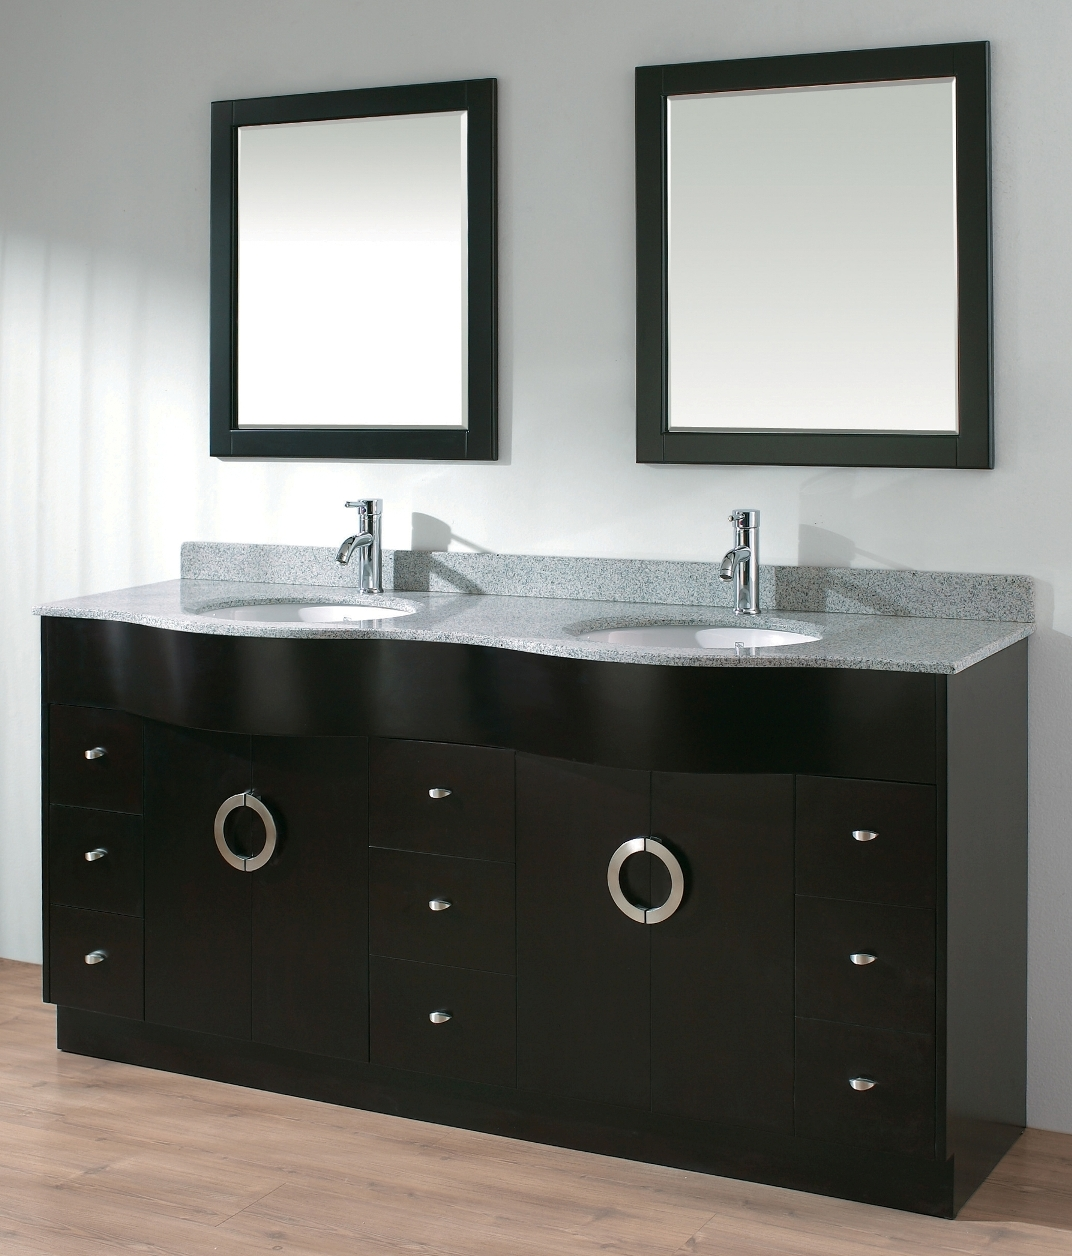 Light Gray Vanity Top : 72inch Speer Vanity Glass Top Vanity Quartz Top Vanity